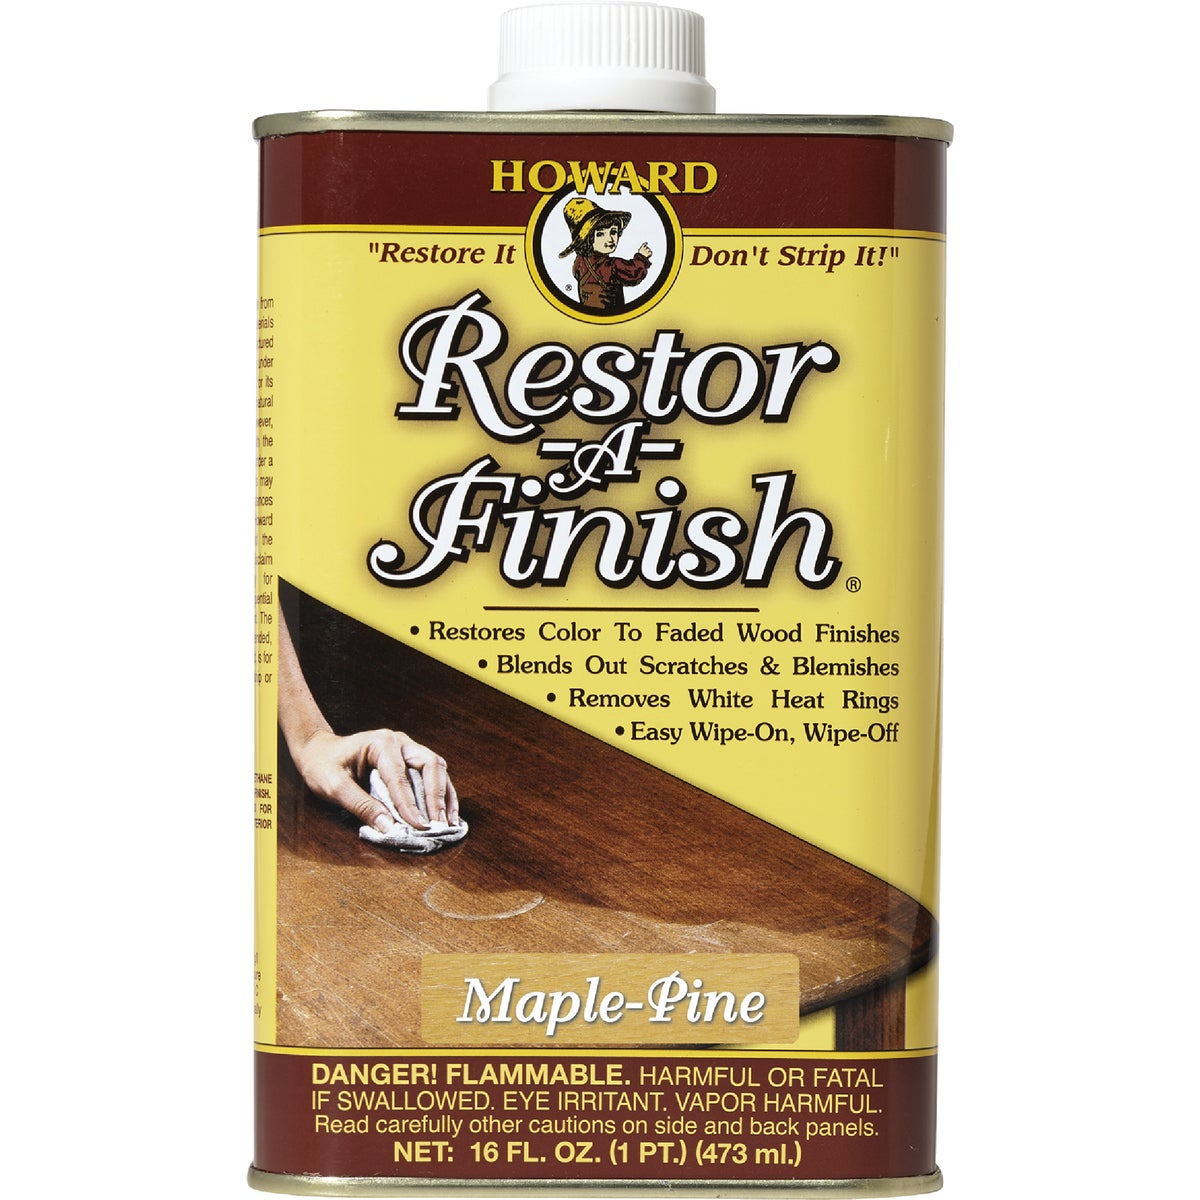 MAPL/PNE RESTOR-A-FINISH - RF2016 by Howard Products